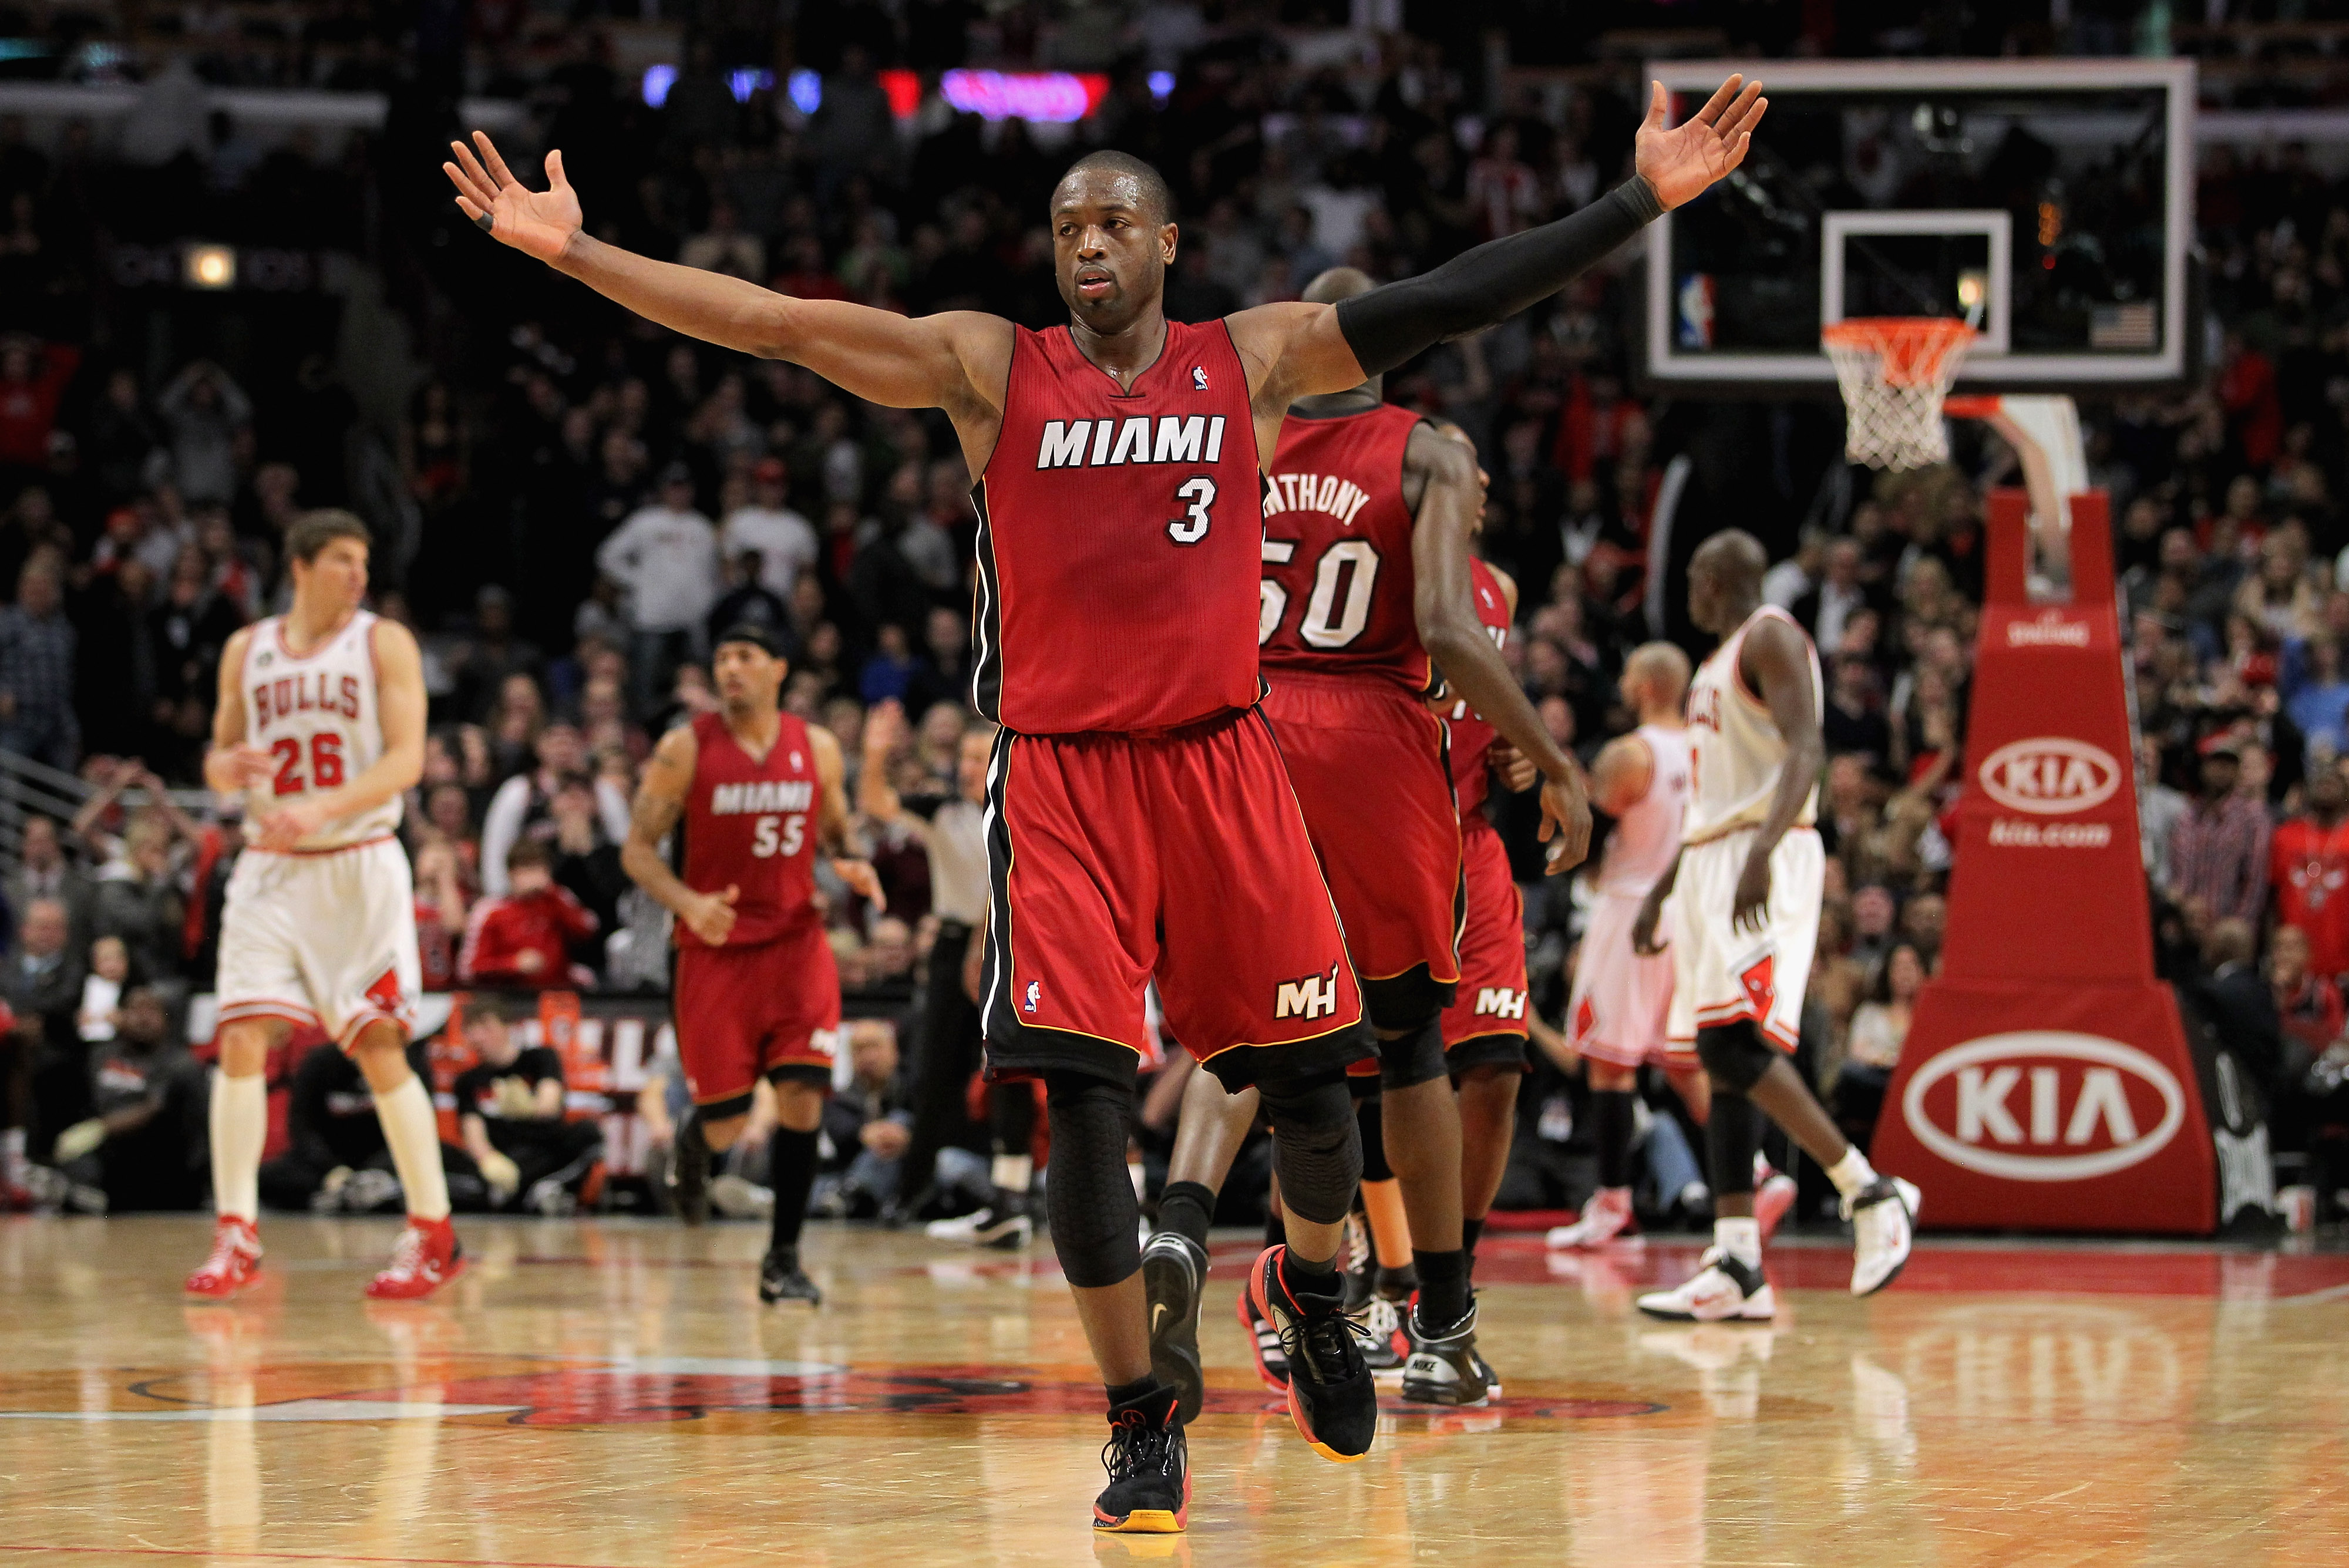 CHICAGO, IL - JANUARY 15:  Dwyane Wade #3 of the Miami Heat celebrates his three point field goal with 37 seconds remaining in the game to give hte Heat a 96-95 lead over the Chicago Bulls at the United Center on January 15, 2011 in Chicago, Illinois. The